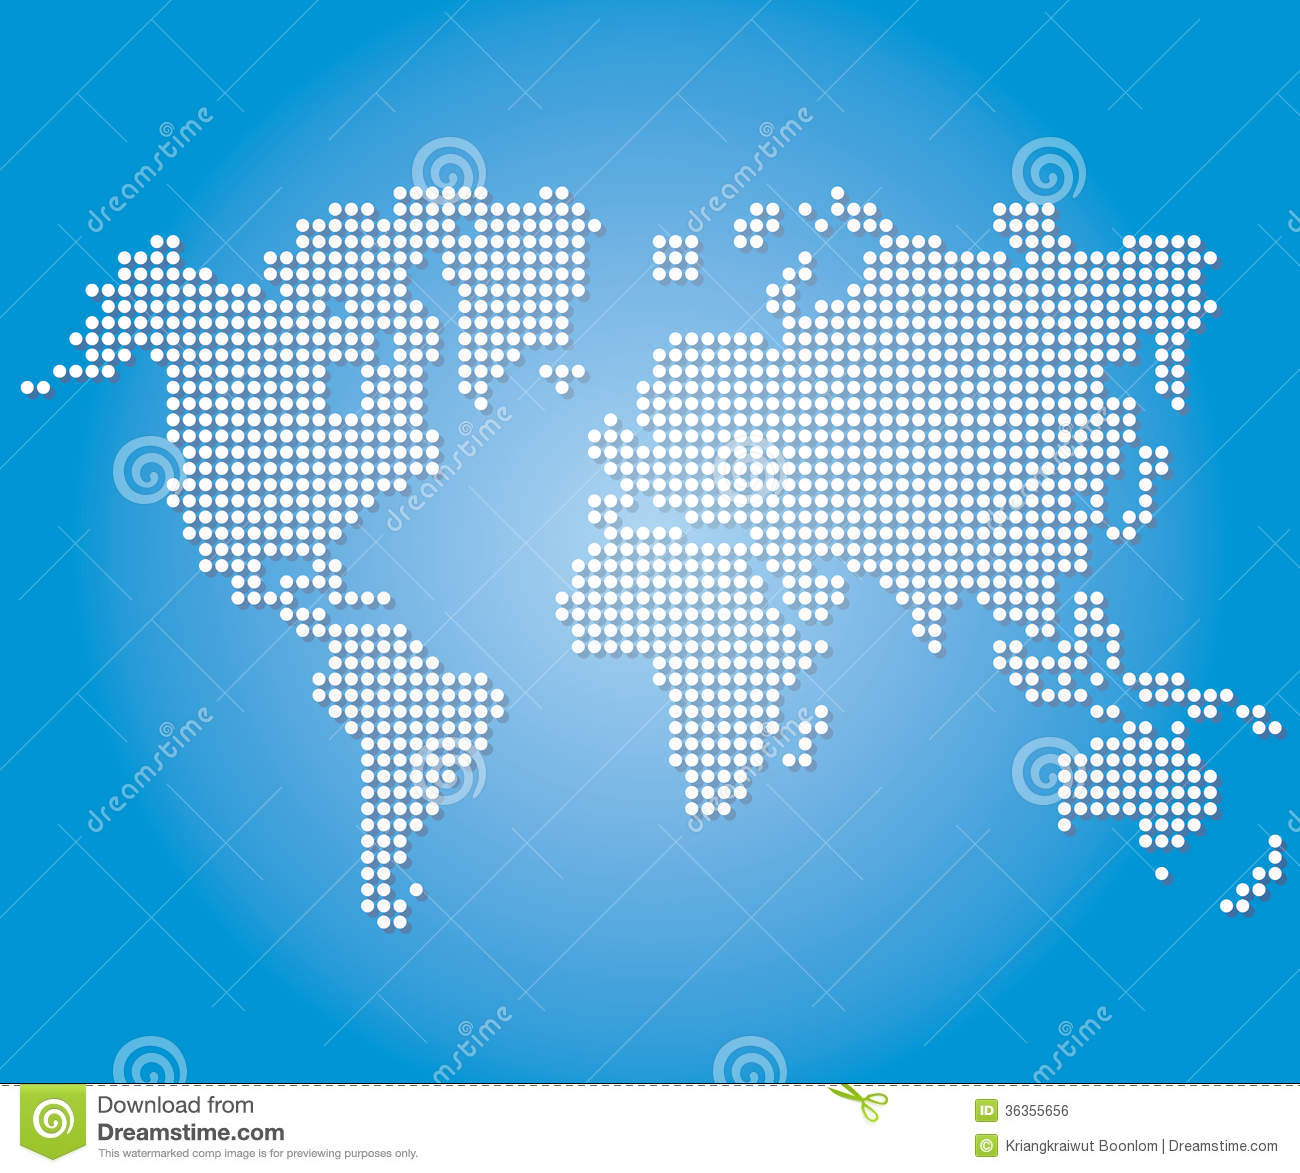 Dot world maps and globes on blue color background stock vector dot world maps and globes on blue color background royalty free stock photo gumiabroncs Image collections